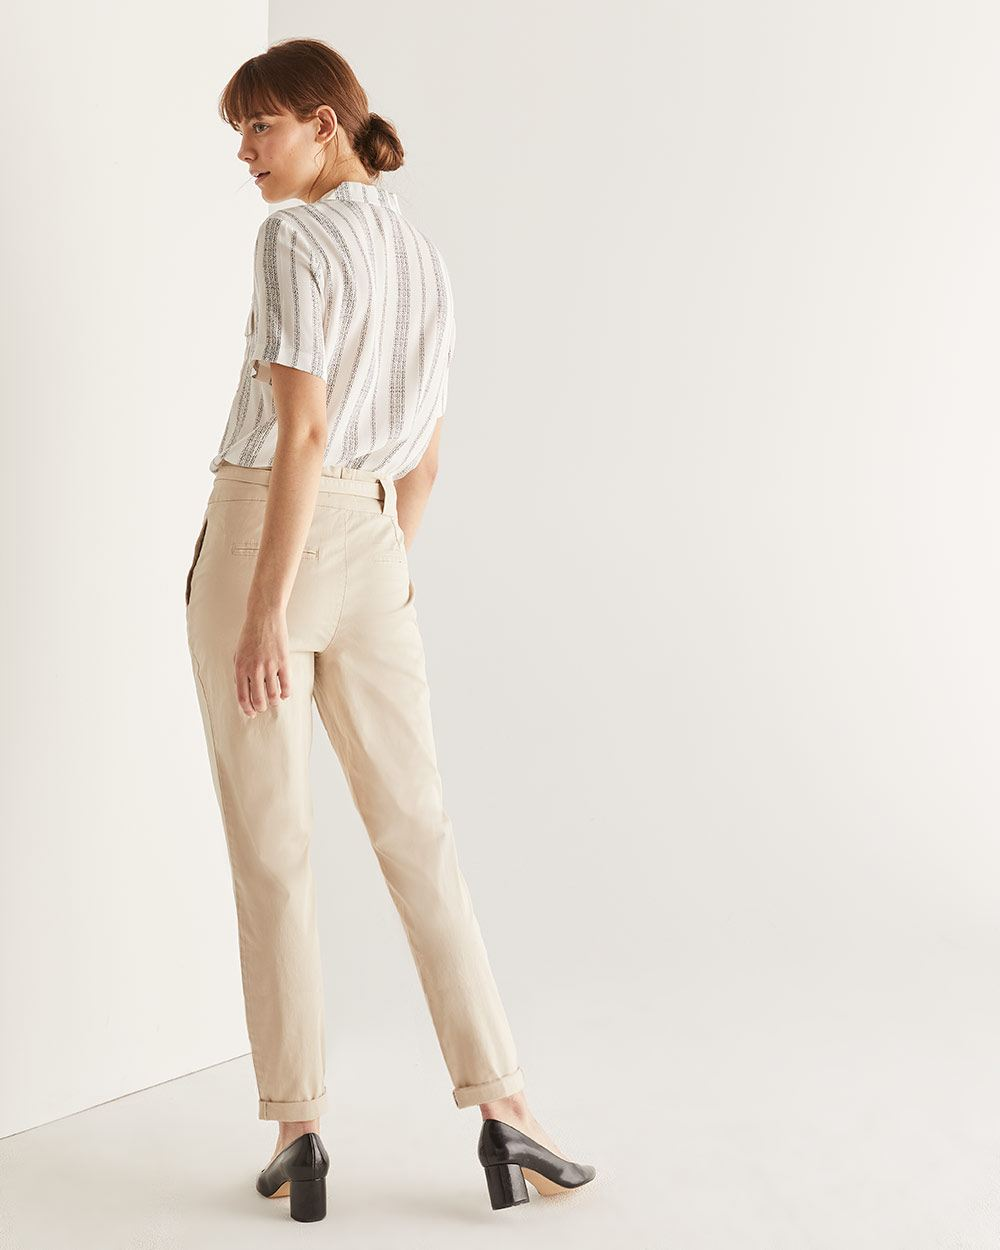 Belted Chino Pant - Petite